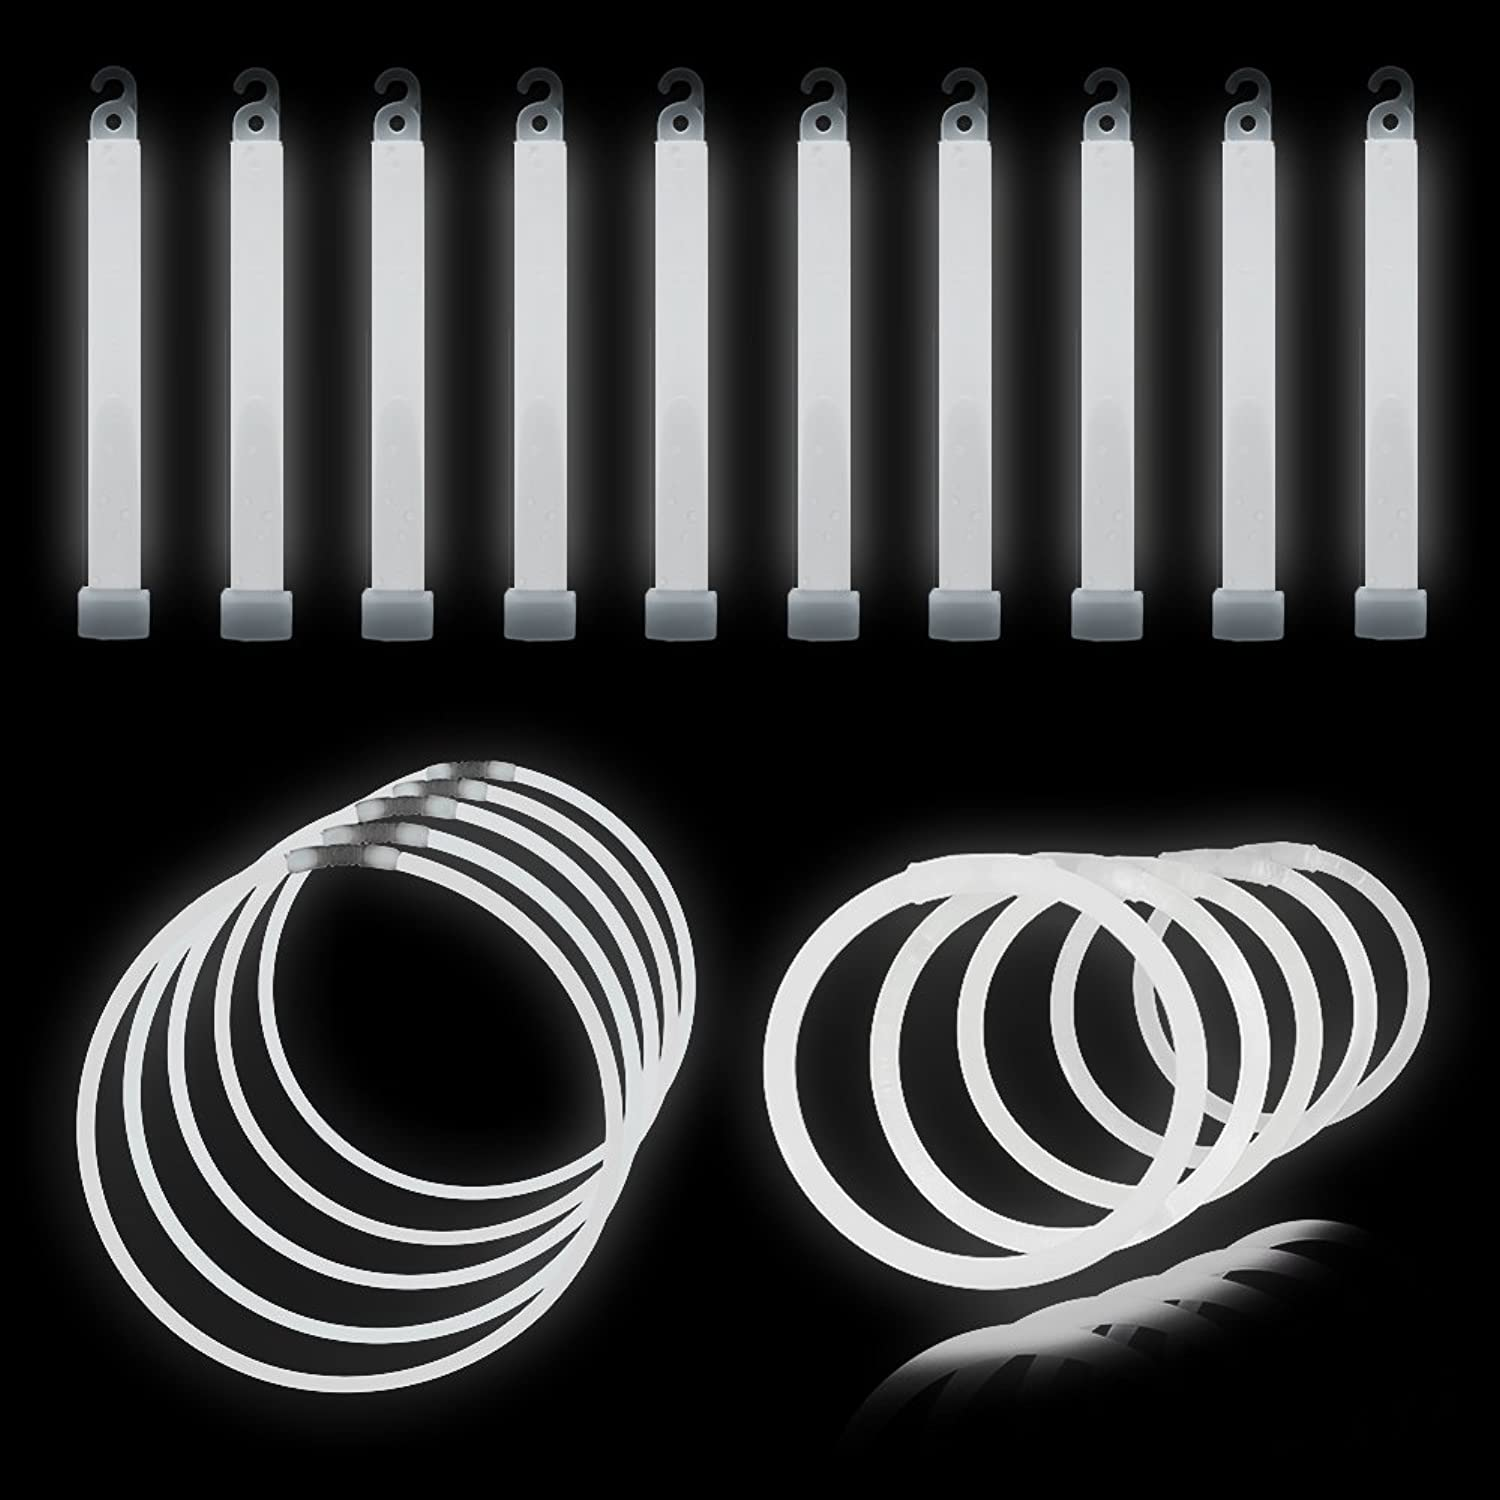 Glow Sticks 175 Piece White Wedding Party Pack - Lumistick Glowstick Bundle with Bracelets, Necklaces, and More